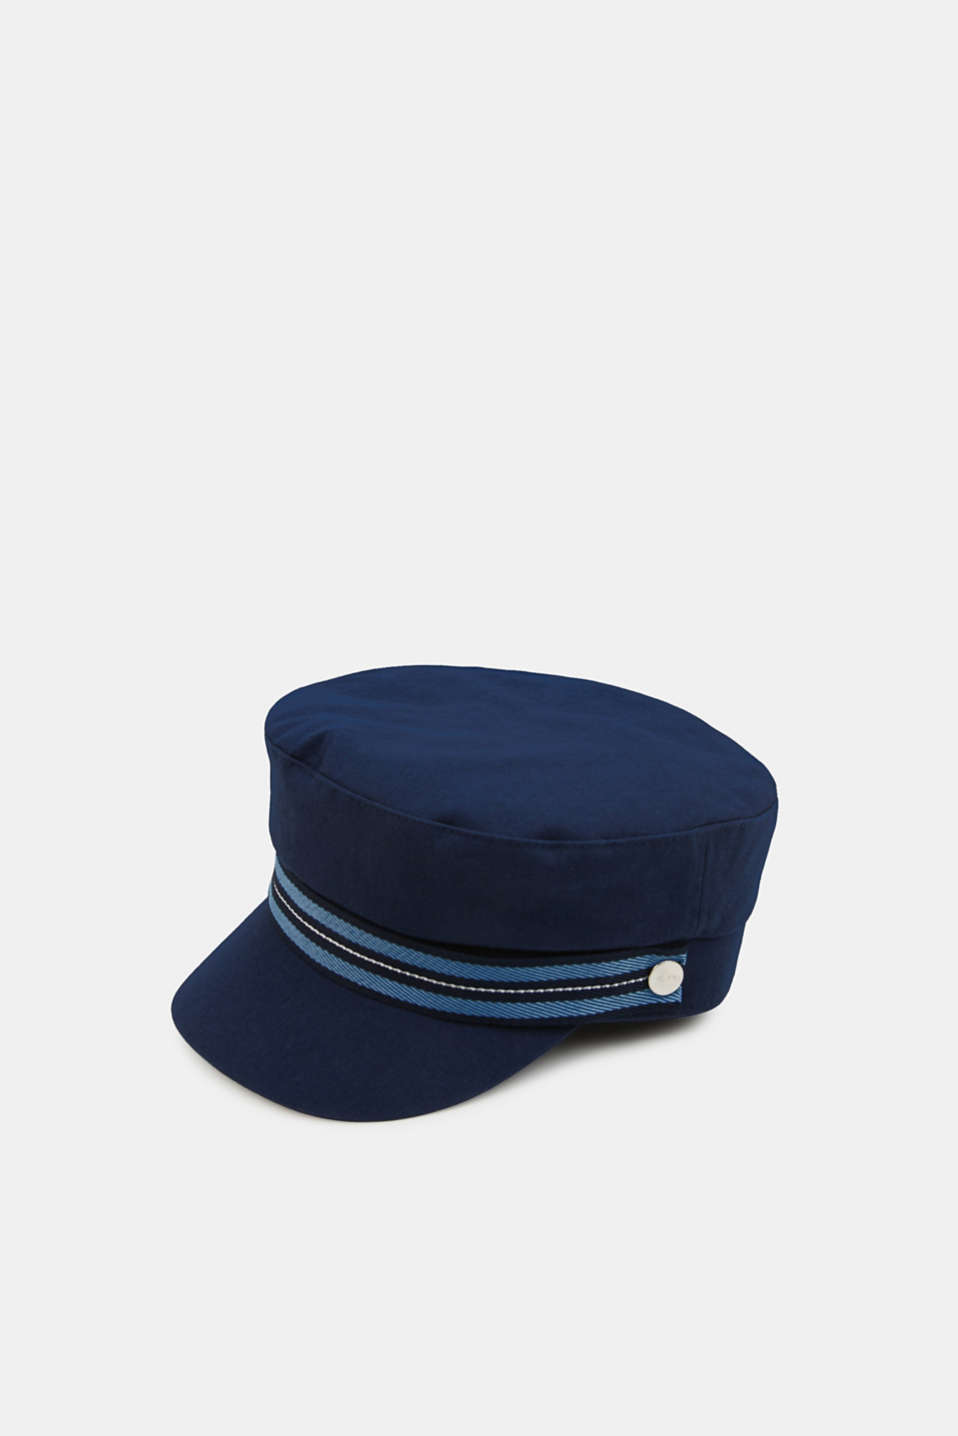 Esprit - Sailor's cap made of 100% cotton